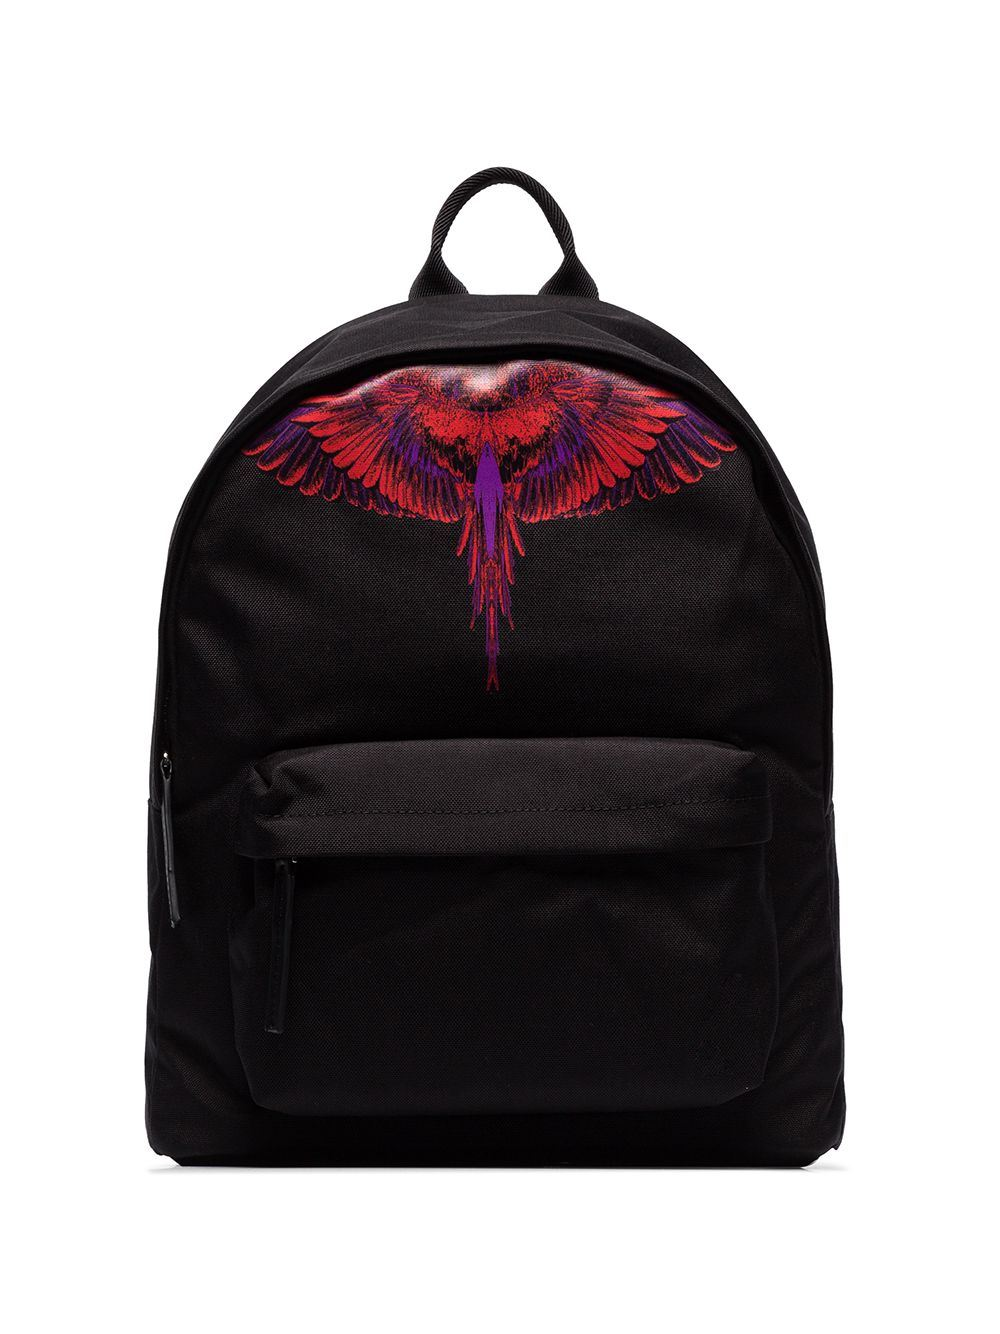 MARCELO BURLON red wings backpack - Maison De Fashion